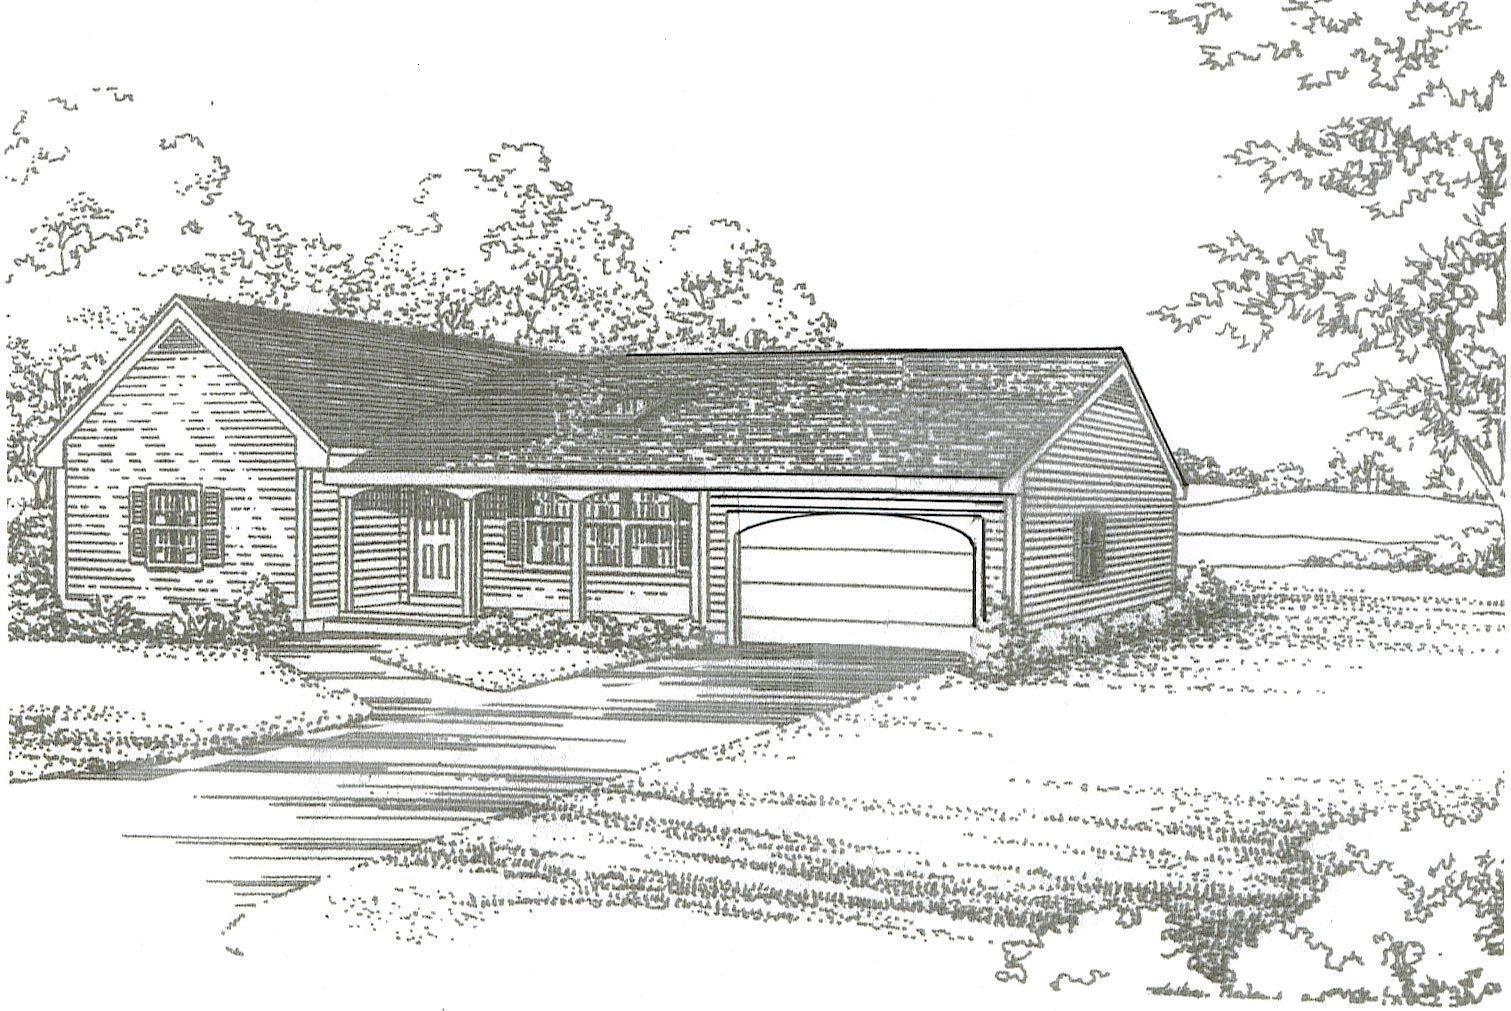 2 Bdrm 1 1 2 Bath 1440 SF   2 Car Garage Ranch Style House Design Building Plans